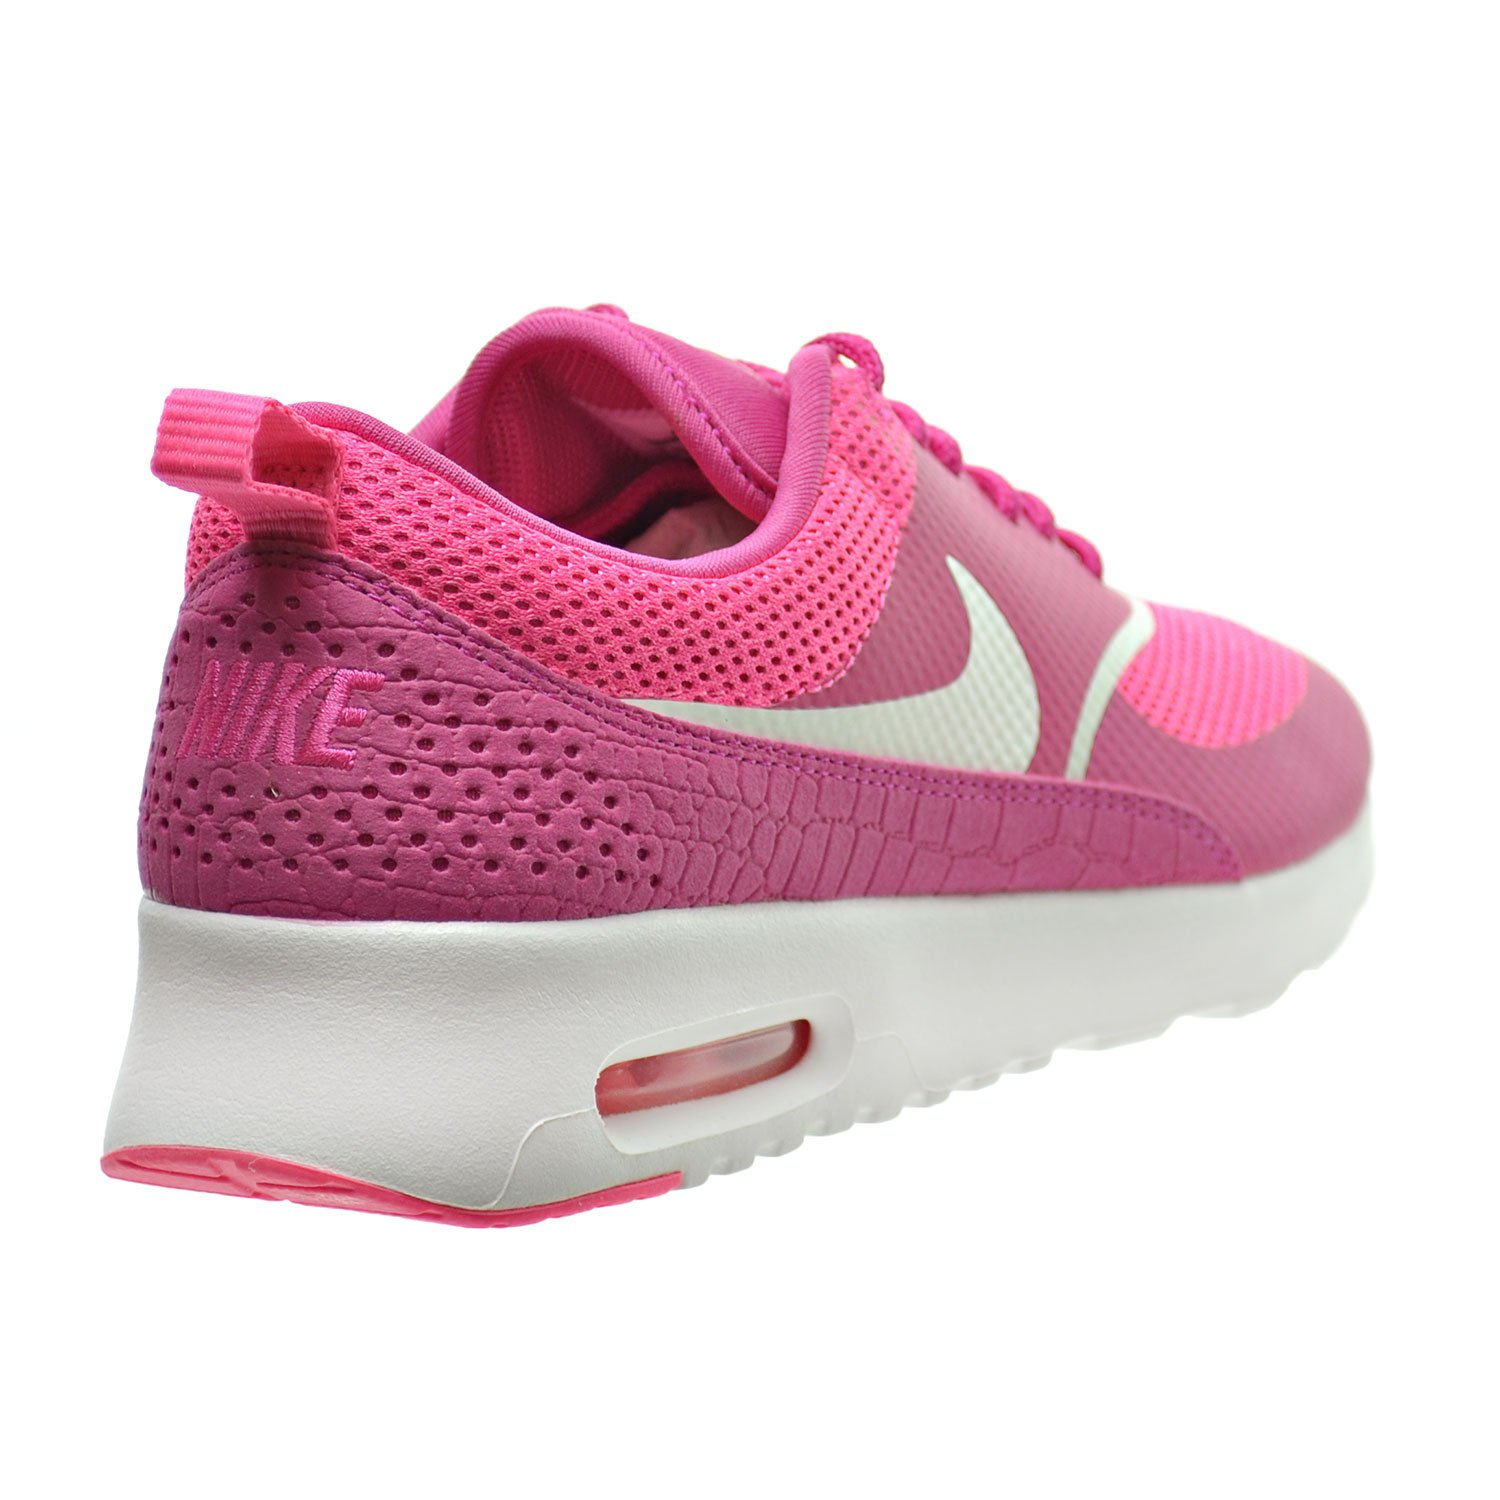 d3ec6ef115 Amazon.com | Nike Air Max Thea Women's Shoes Vivid Pink/Summit White  599409-609 | Fashion Sneakers